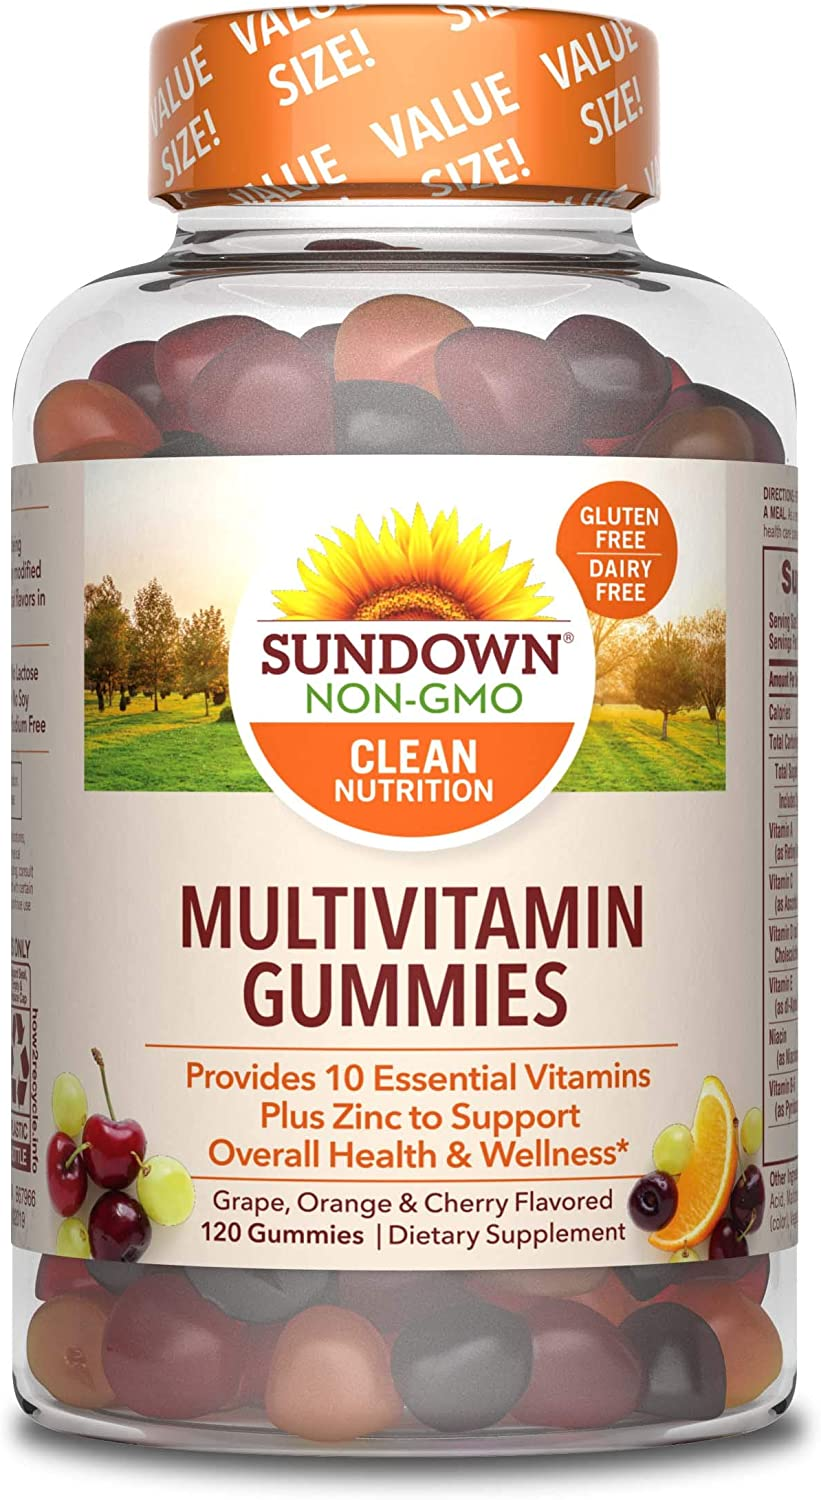 Adult Multivitamin Gummies by Sundown with Vitamin D, C and Zinc for Immune Support, Non-GMOˆ, Free of Gluten, Dairy, Artificial Flavors, 120 Gummies